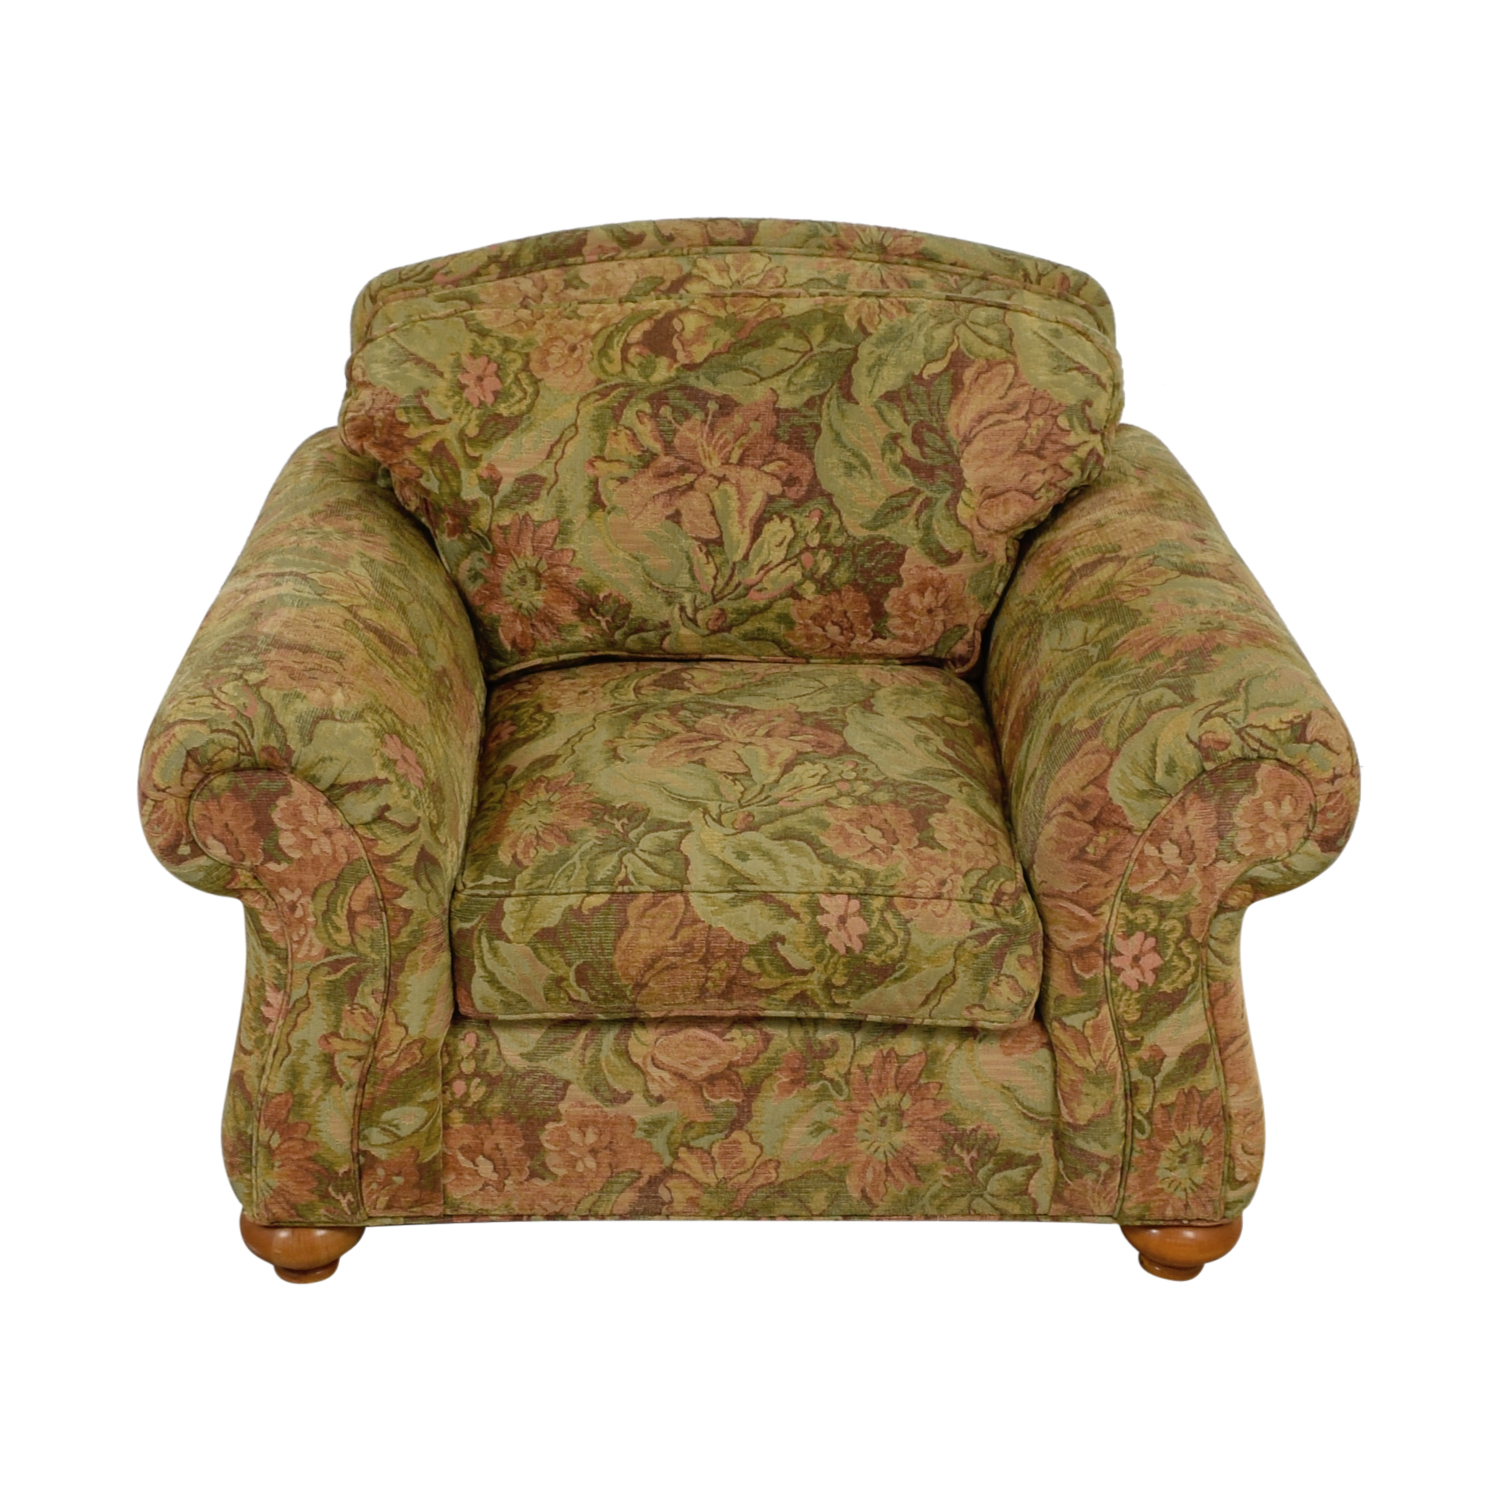 Ethan Allen Ethan Allen Flower Fabric Lounge Chair Accent Chairs